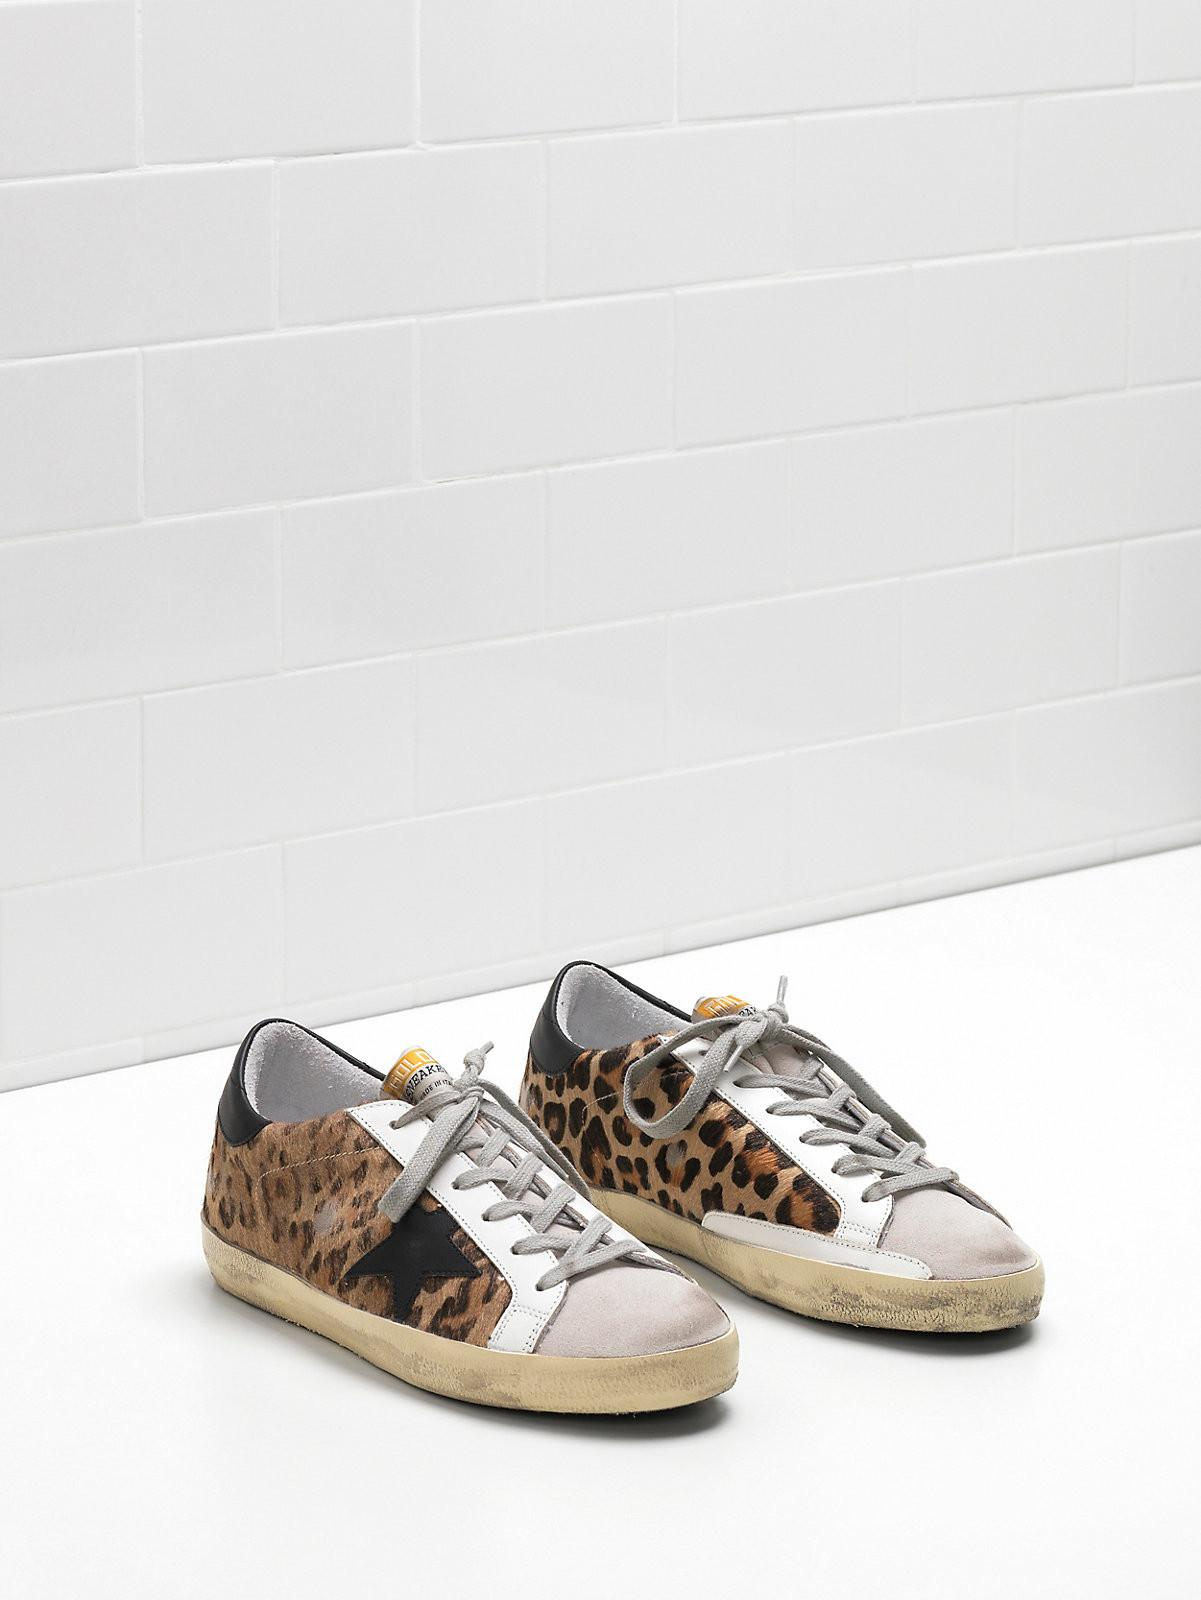 38ab128a058fe Shoes Golden Goose Ggdb Old Style Sneakers Genuine Leather Villous ...